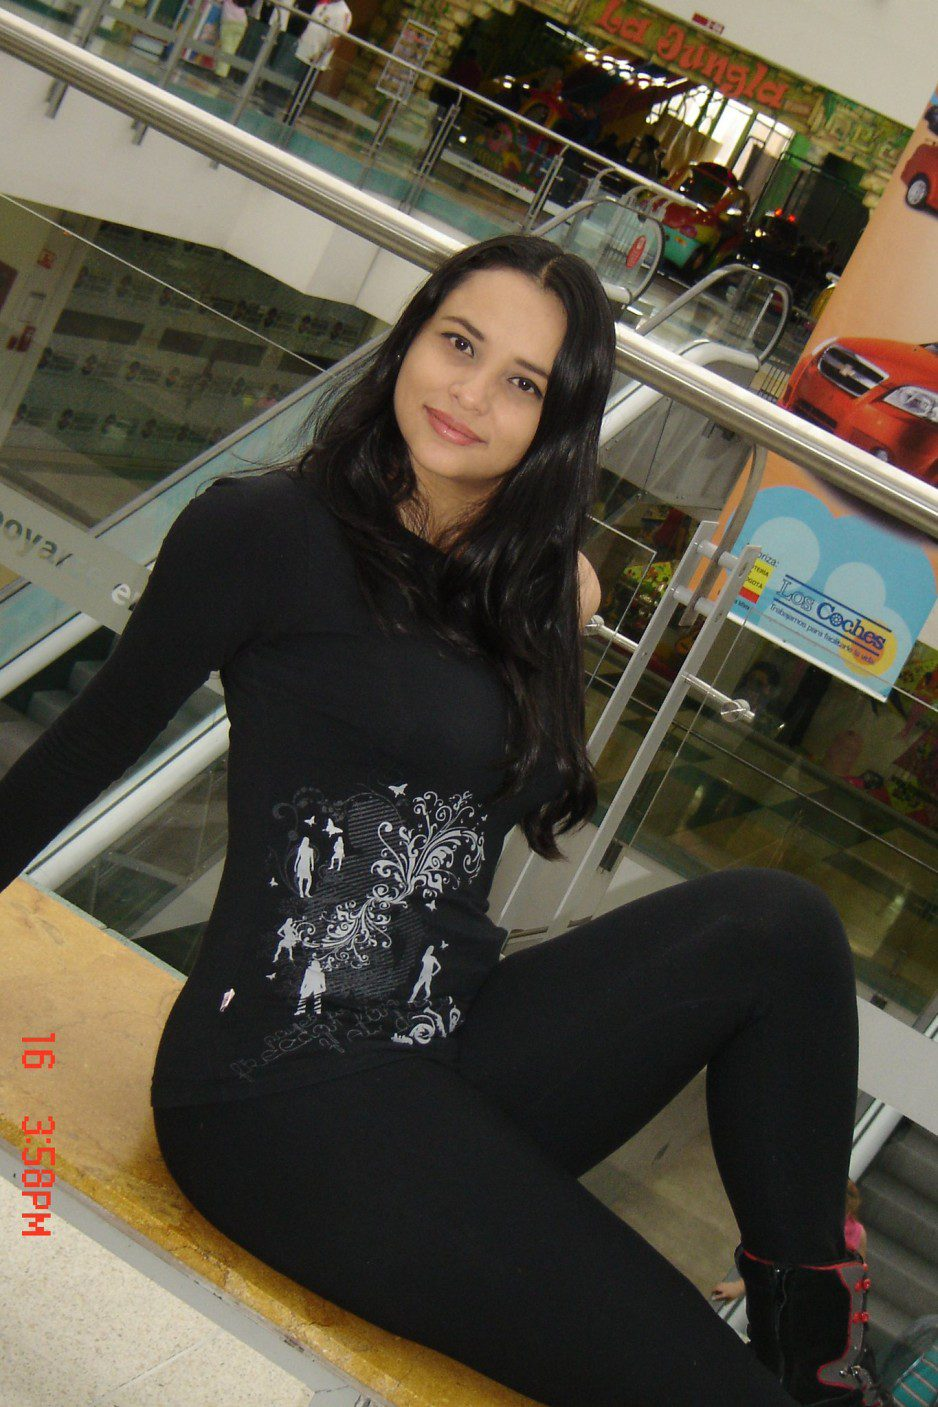 east norwich latina women dating site Online dating in east norwich for free the only 100% free online dating site for dating, love, relationships and friendship register here and chat  staten island new york joanneh1013 58 single woman seeking men scratch here ¦¦¦¦¦¦¦¦¦¦¦¦¦¦ to reveal my status :p.